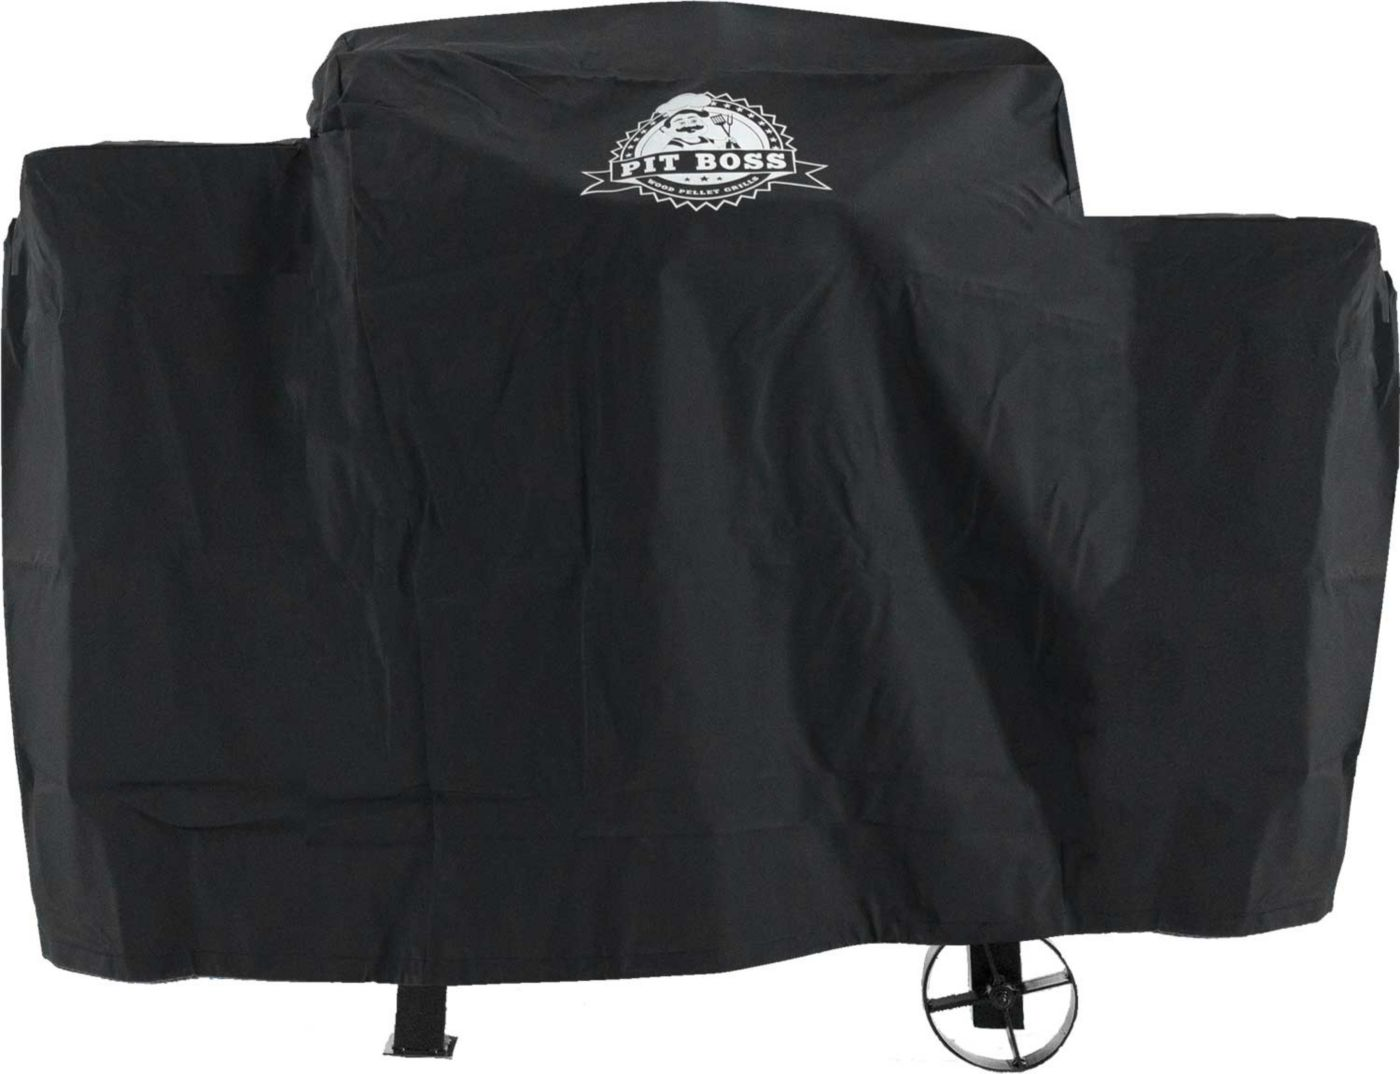 Pit Boss 440D Grill Cover